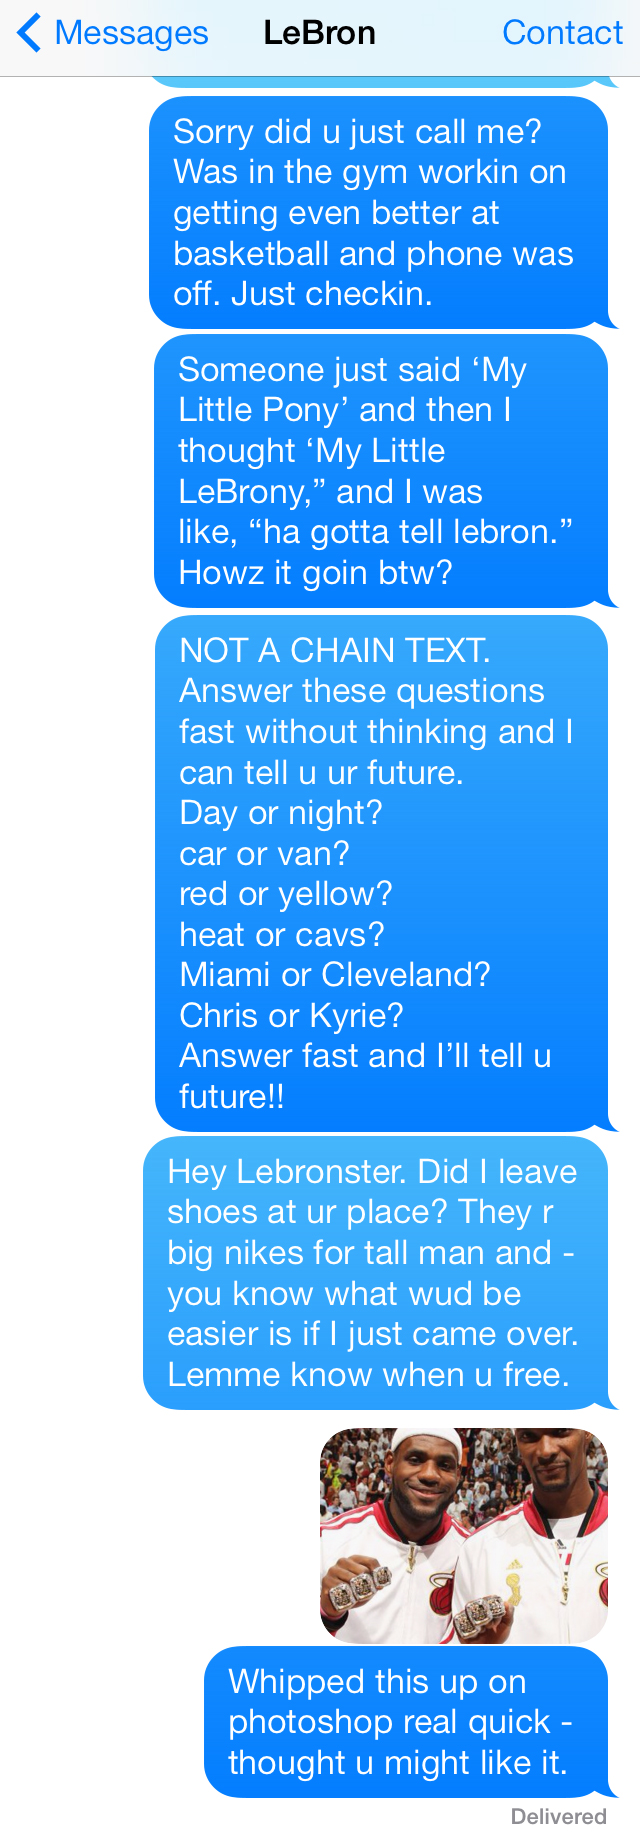 Media: Chris Bosh's Text Messages to LeBron About Next Move